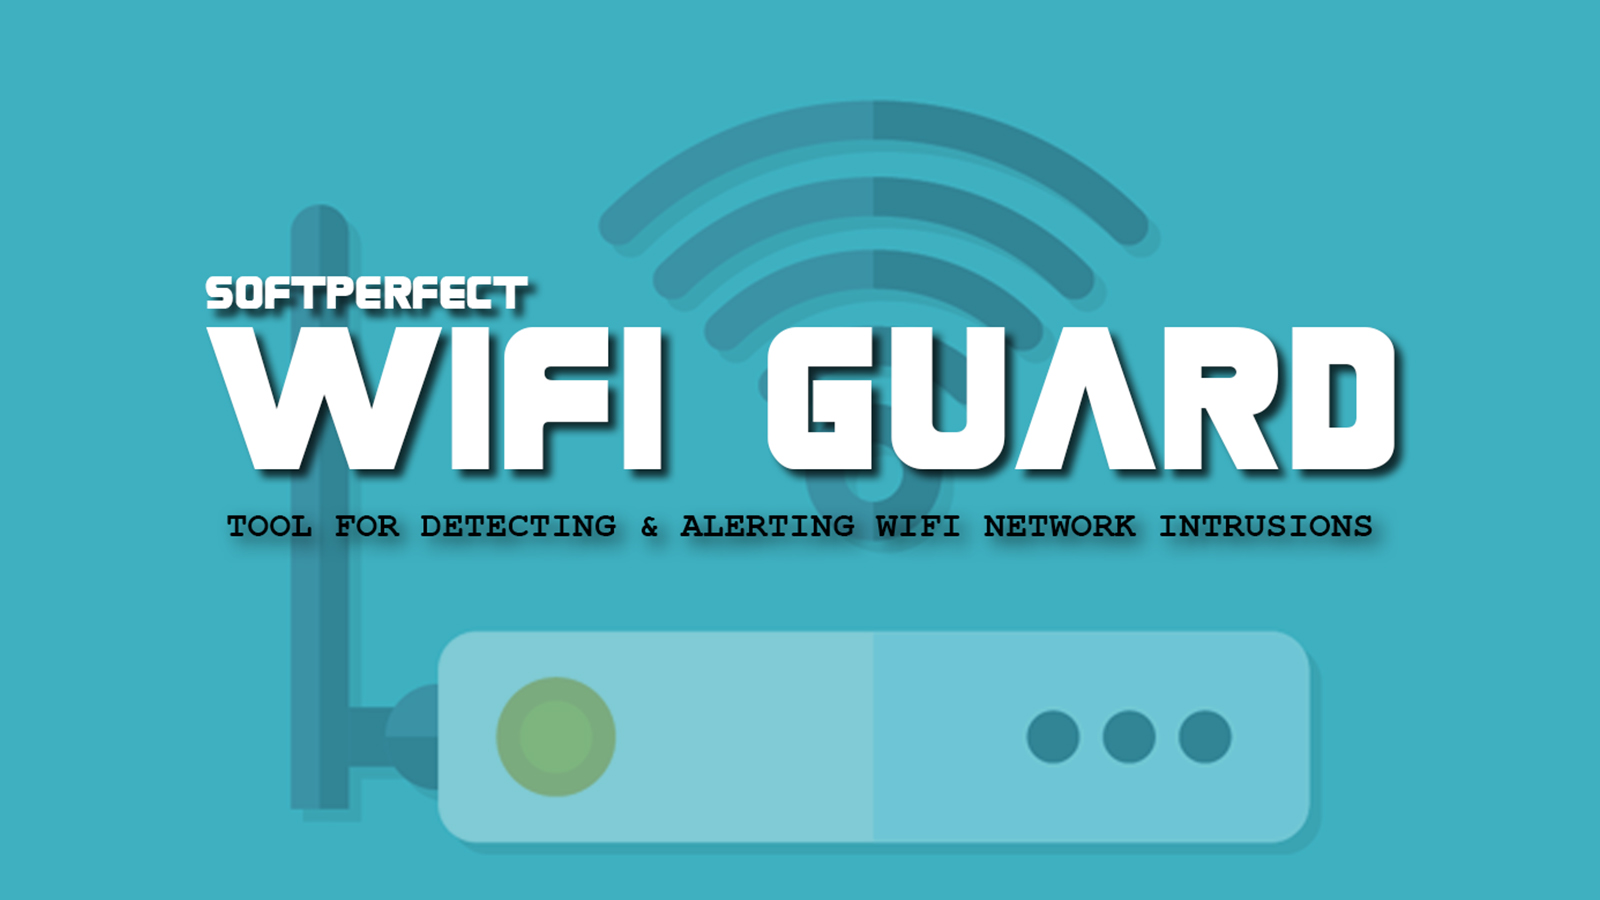 SoftPerfect WiFi Guard Detect and Alert Local WiFi Network Intruders